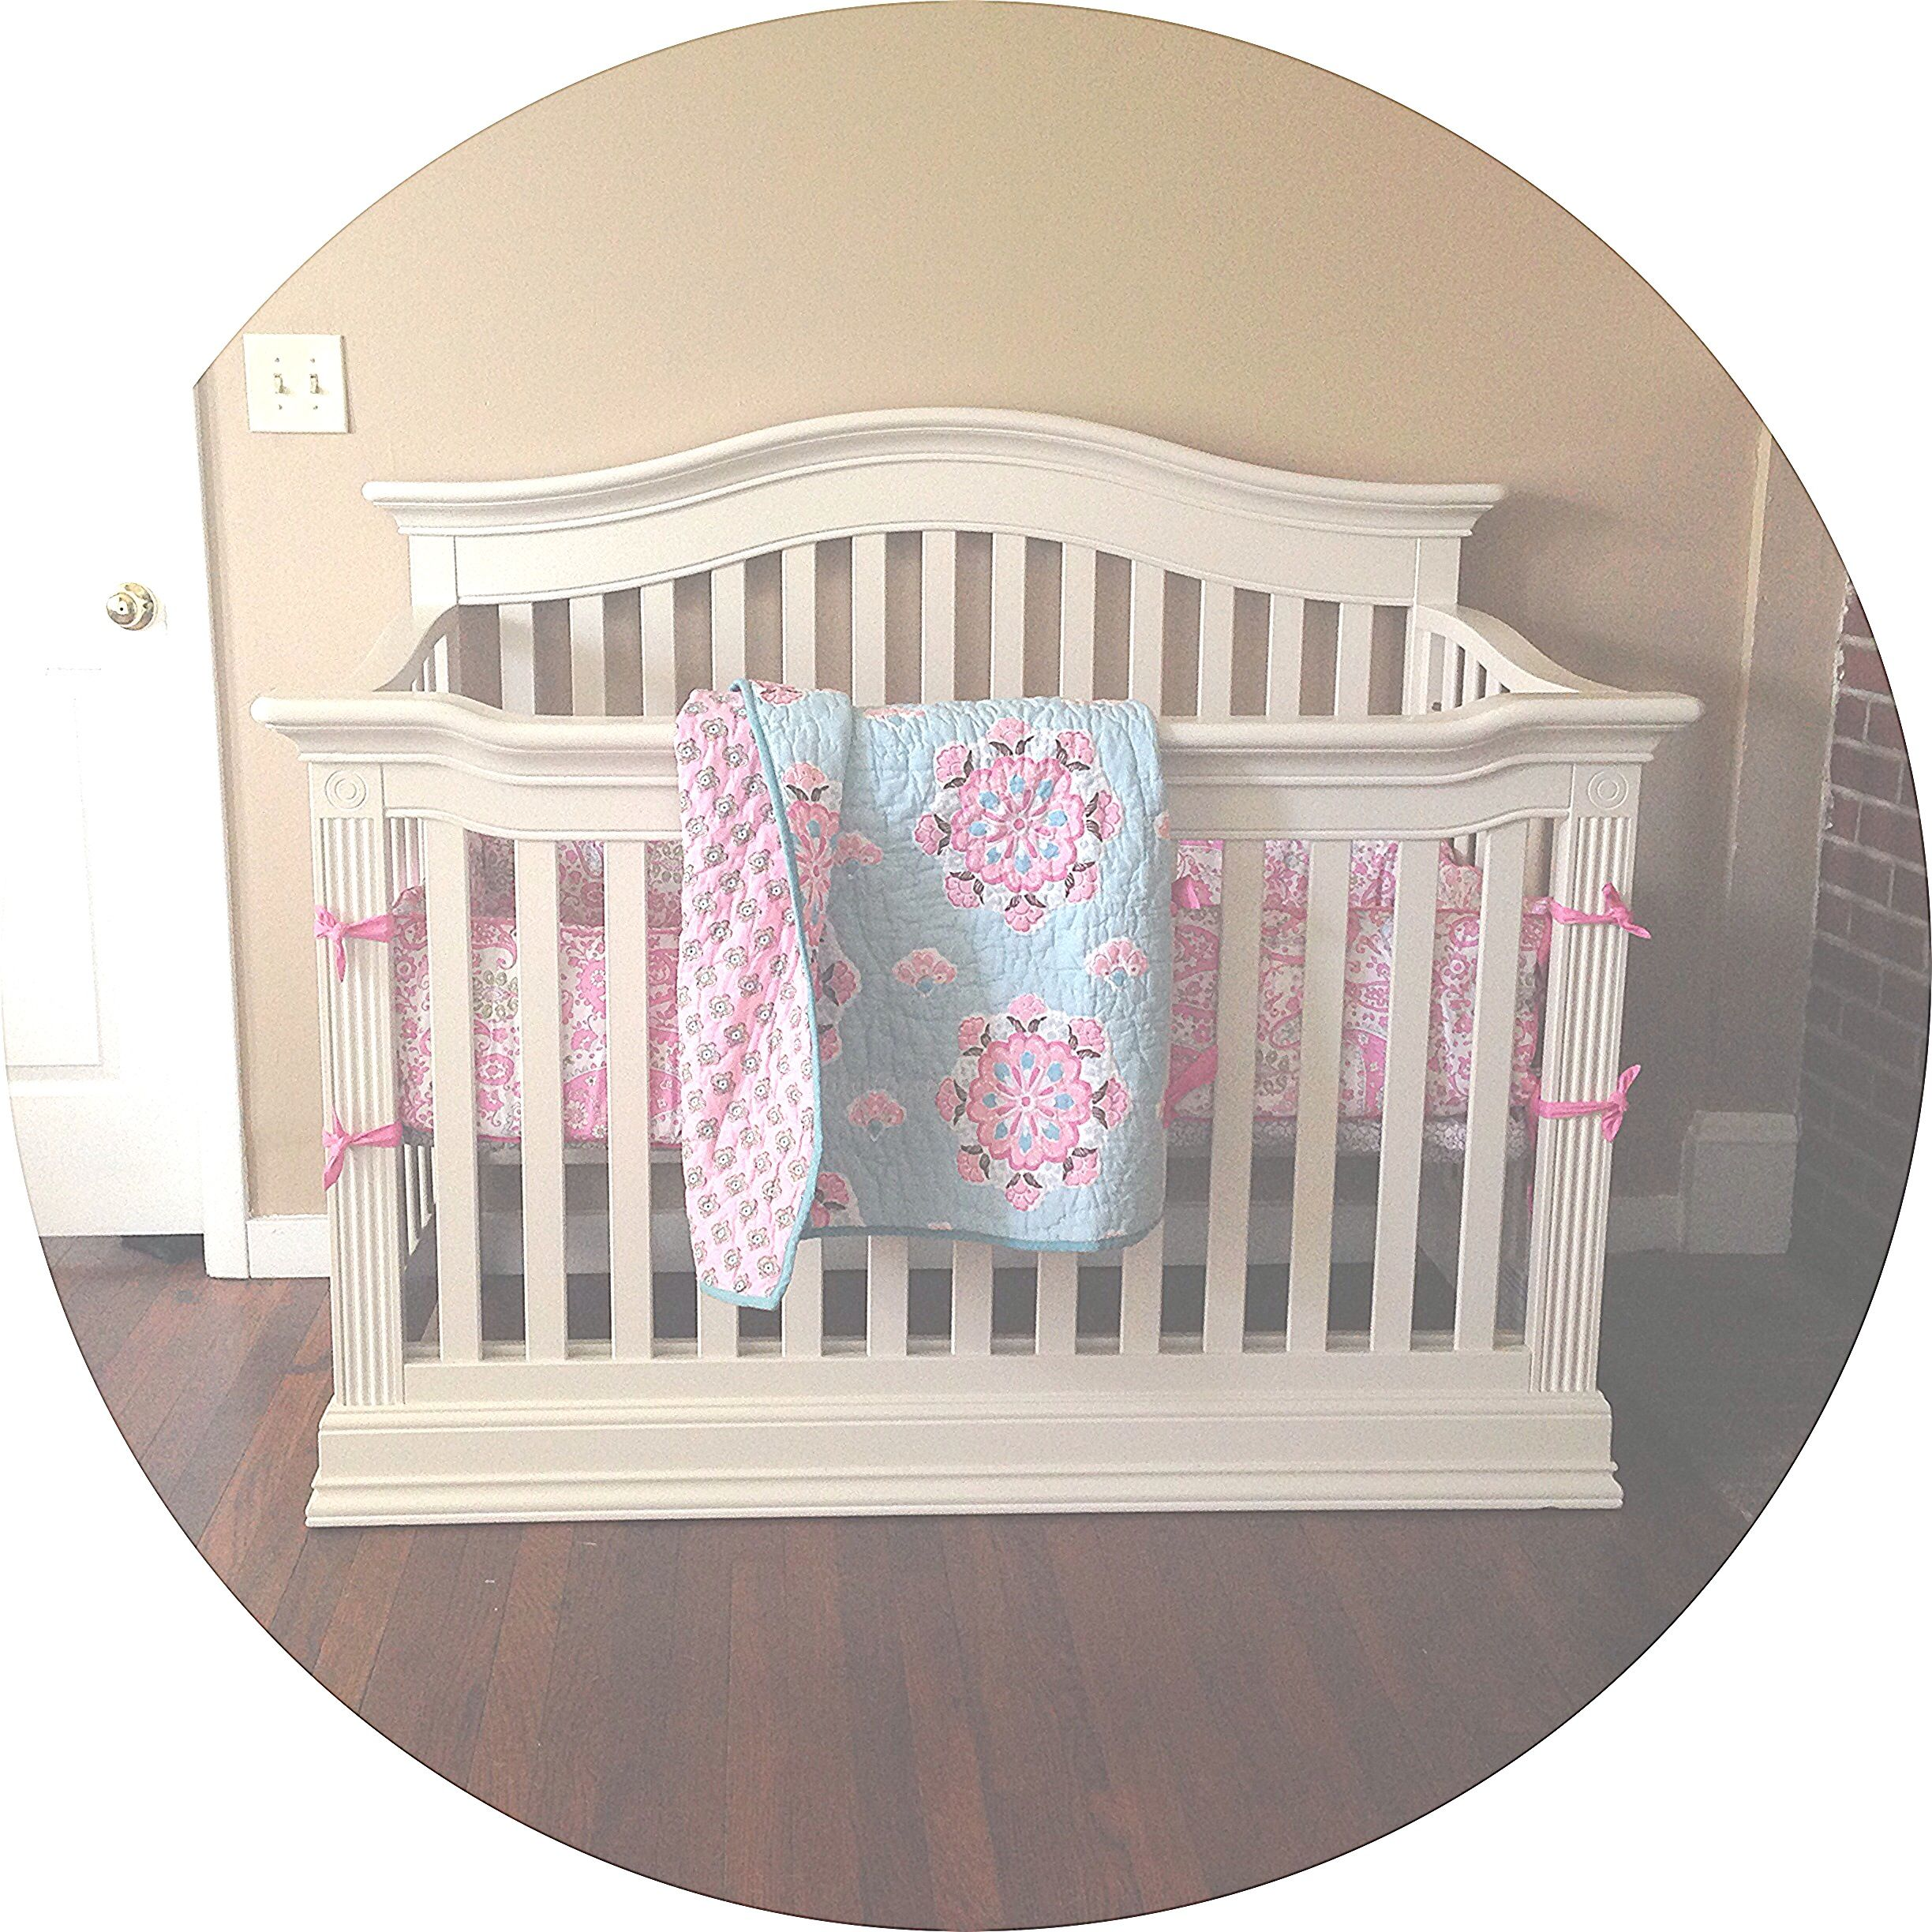 Lily Grace\'s crib. Bedding from Pottery Barn Kids, crib is Baby ...